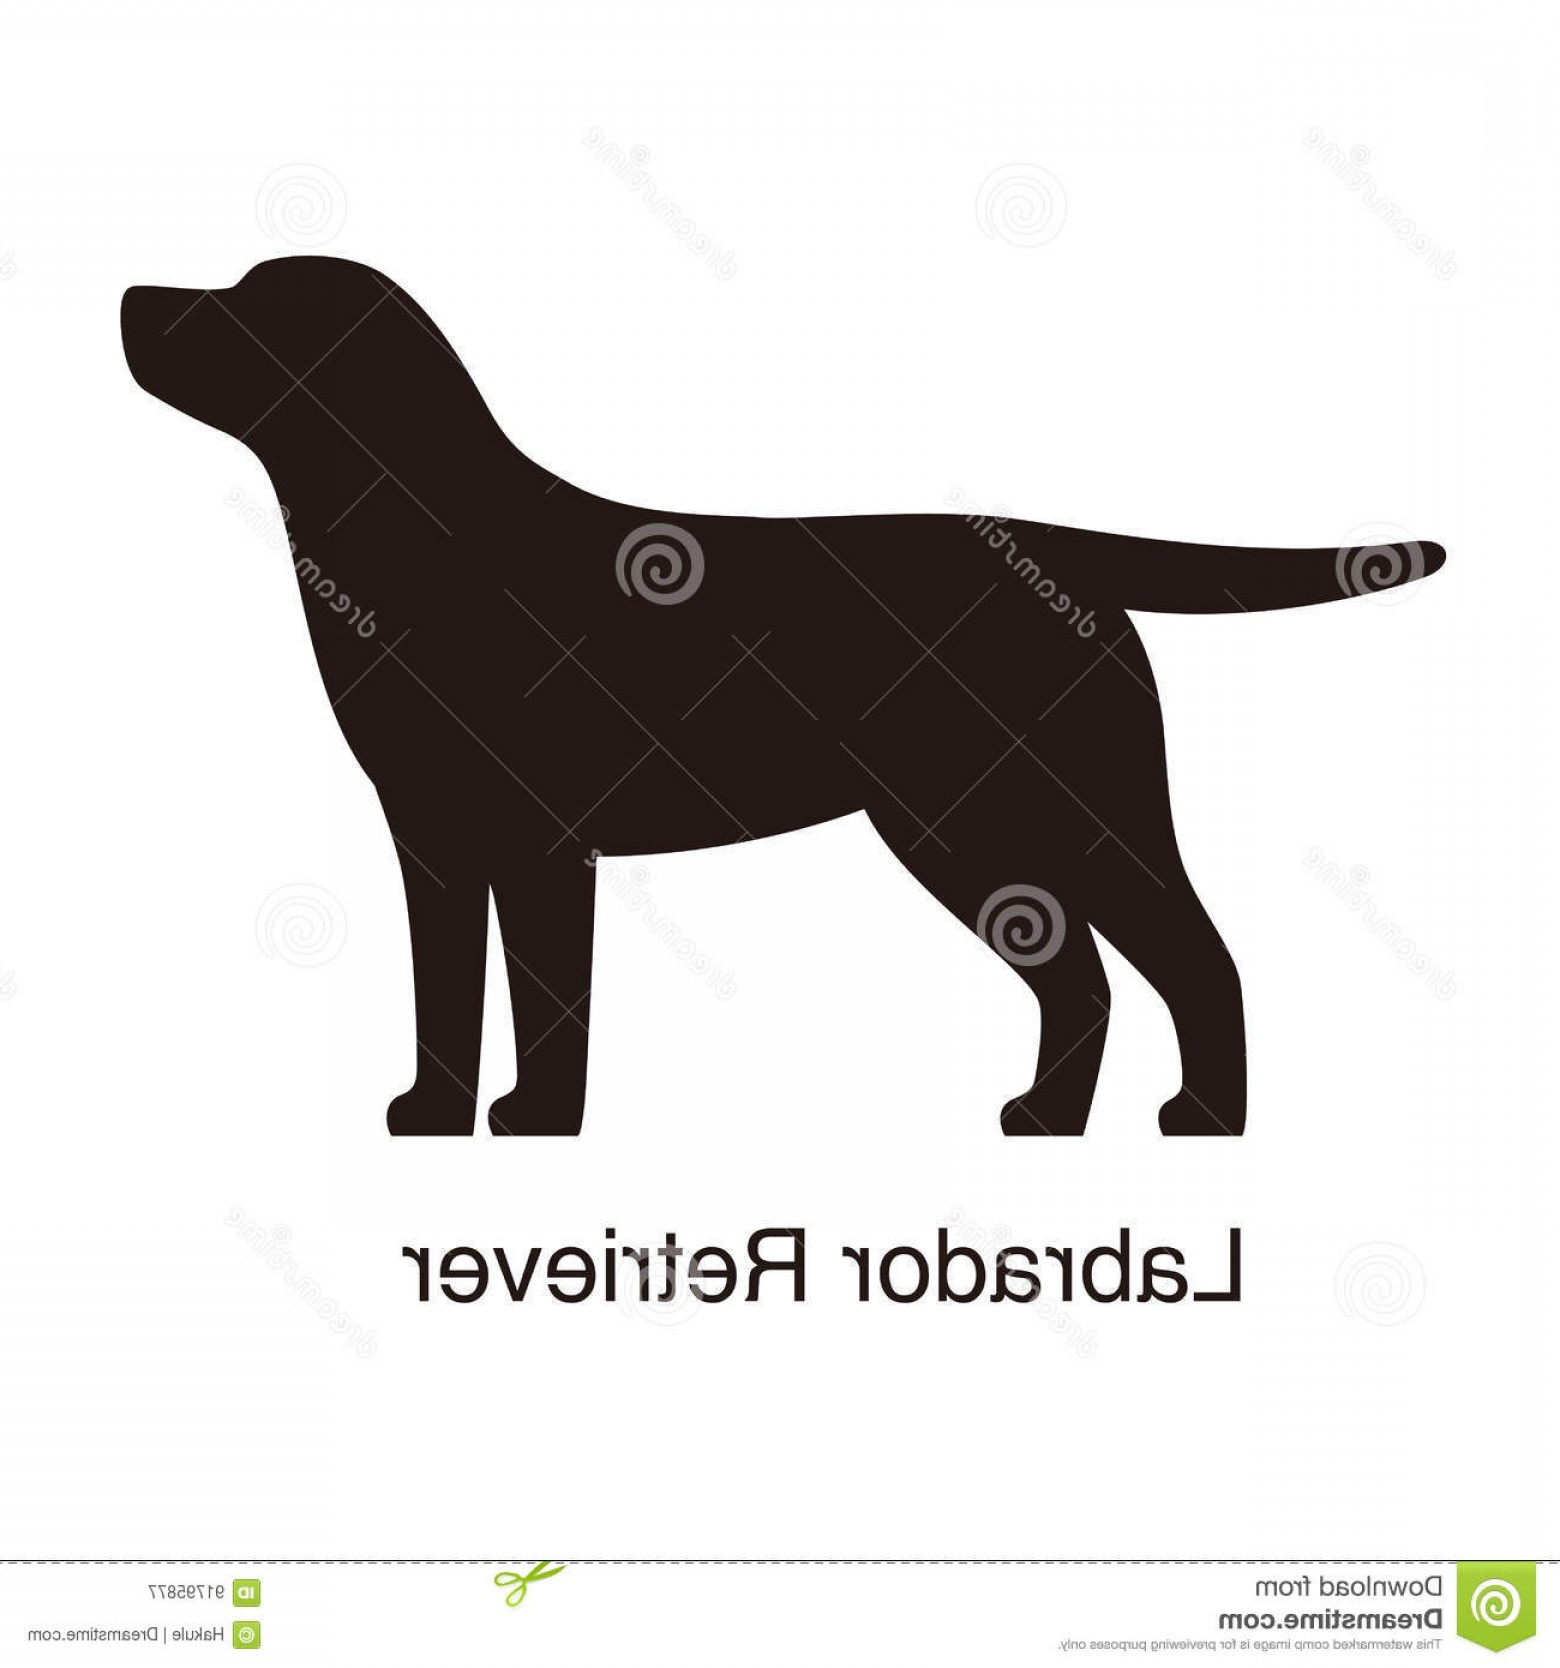 Labrador Silhouette Vector: Stock Illustration Labrador Retriever Dog Silhouette Side View Vector Illustration Image